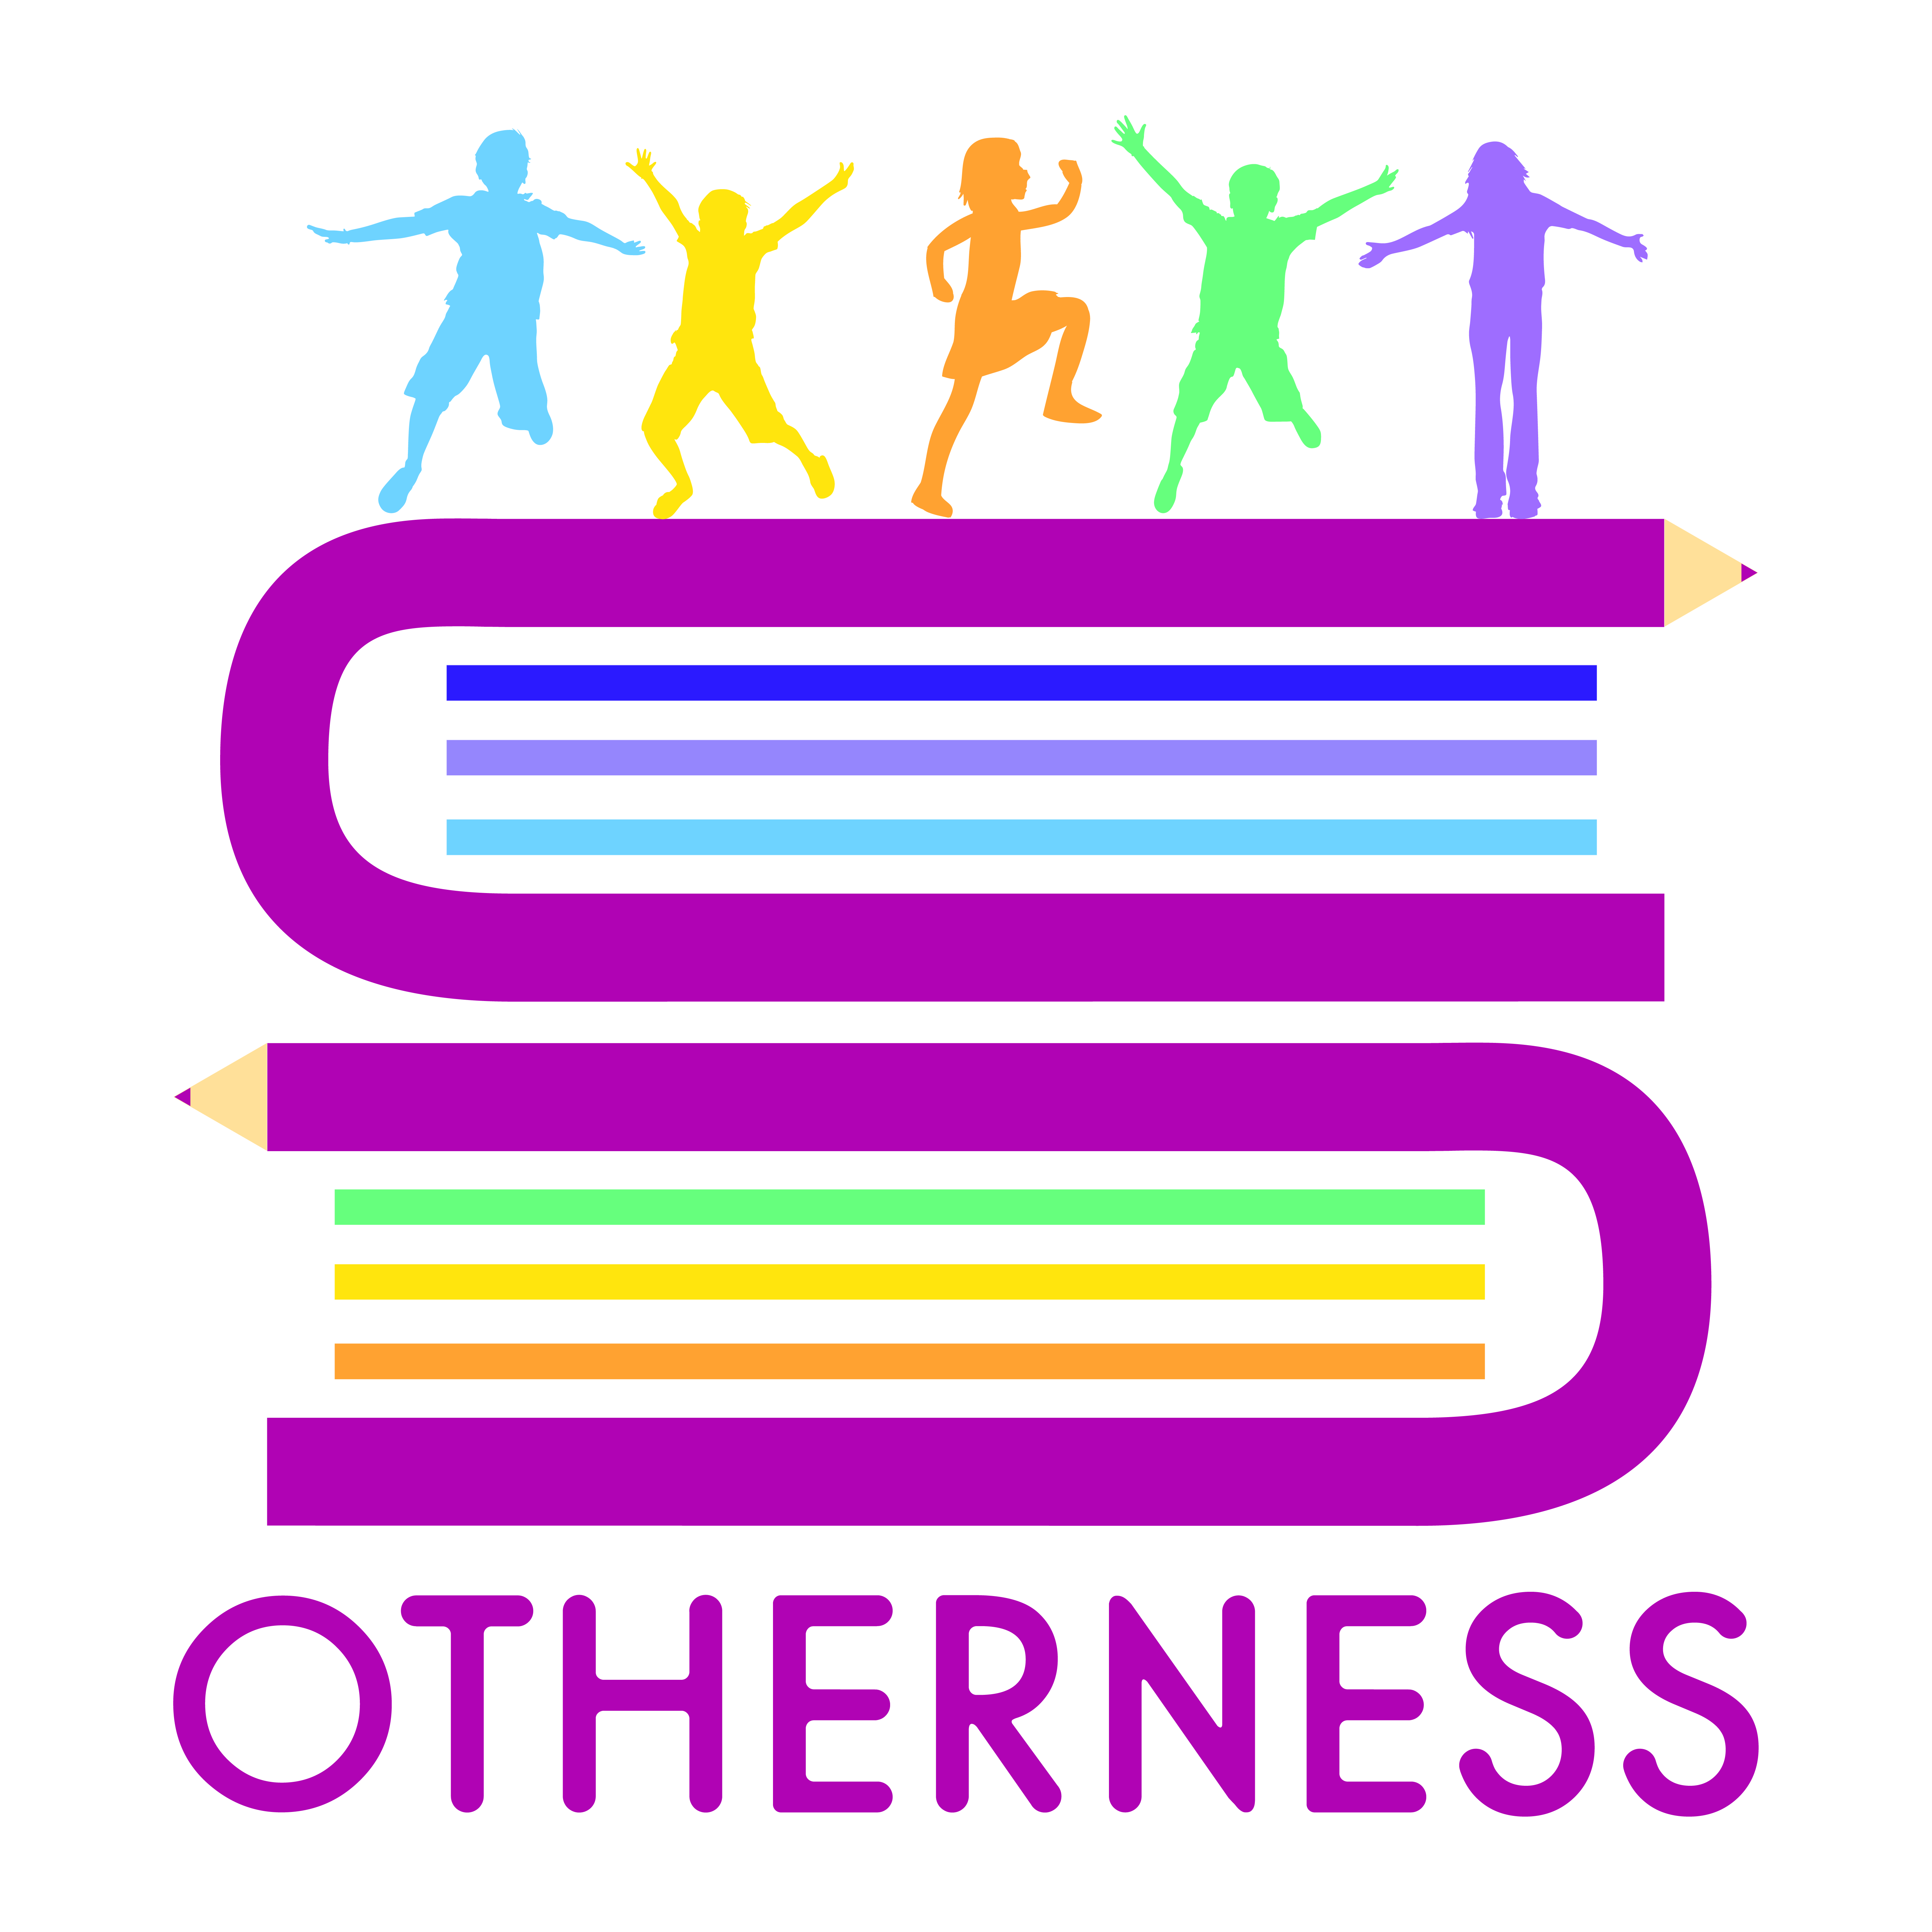 otherness meeting in thessaloniki coming up ngo in thessaloniki to further discuss updates and relative organisational issues